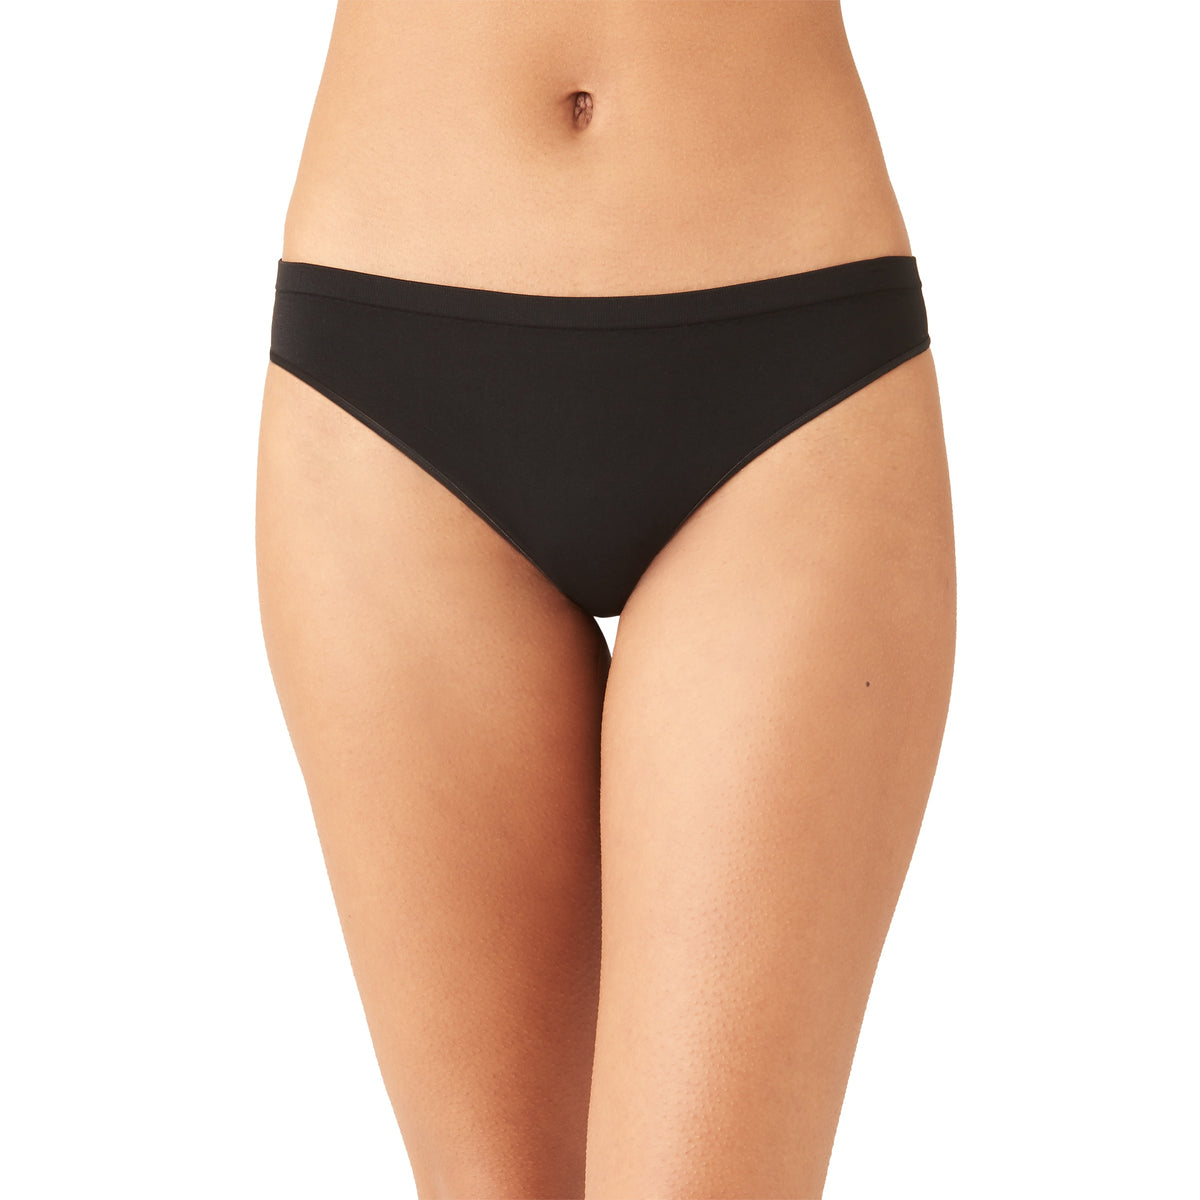 979240 Comfort Intended Thong |NIGHT| (004)